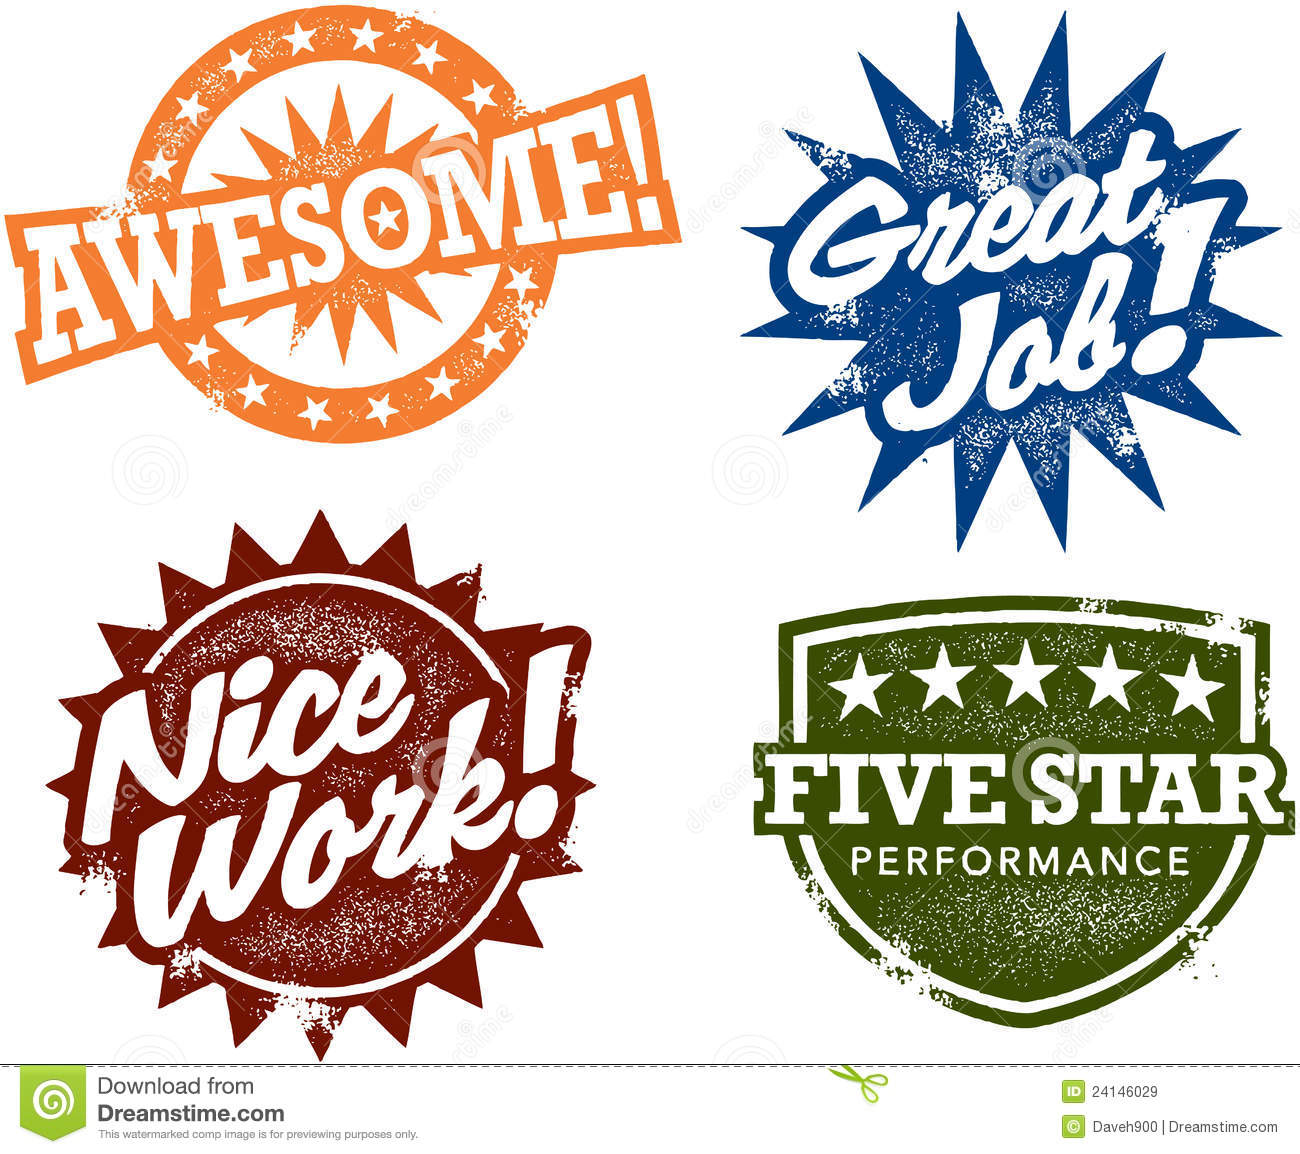 Awesome Performance Reward Stamps Royalty Free Stock Images   Image